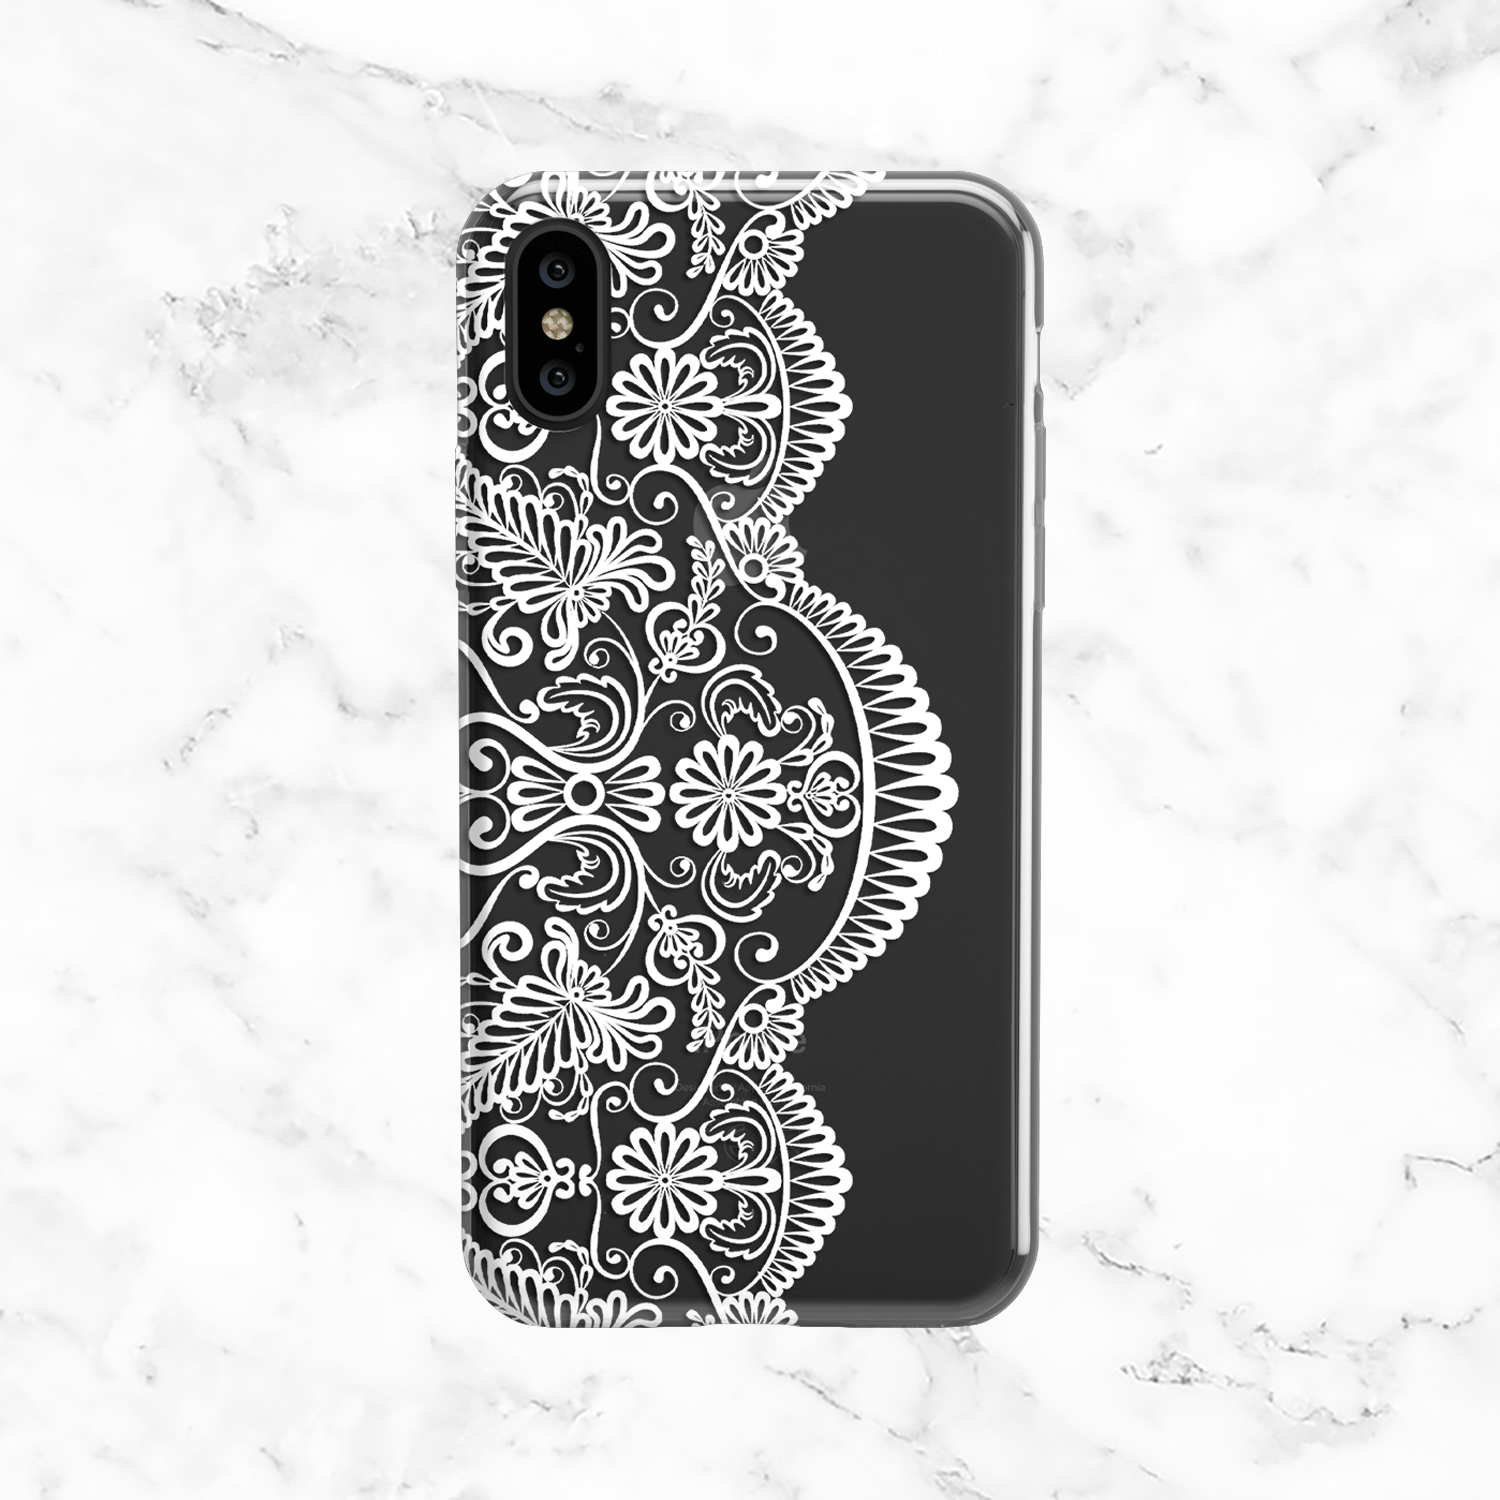 White Vintage Lace Phone Case - Clear Printed TPU